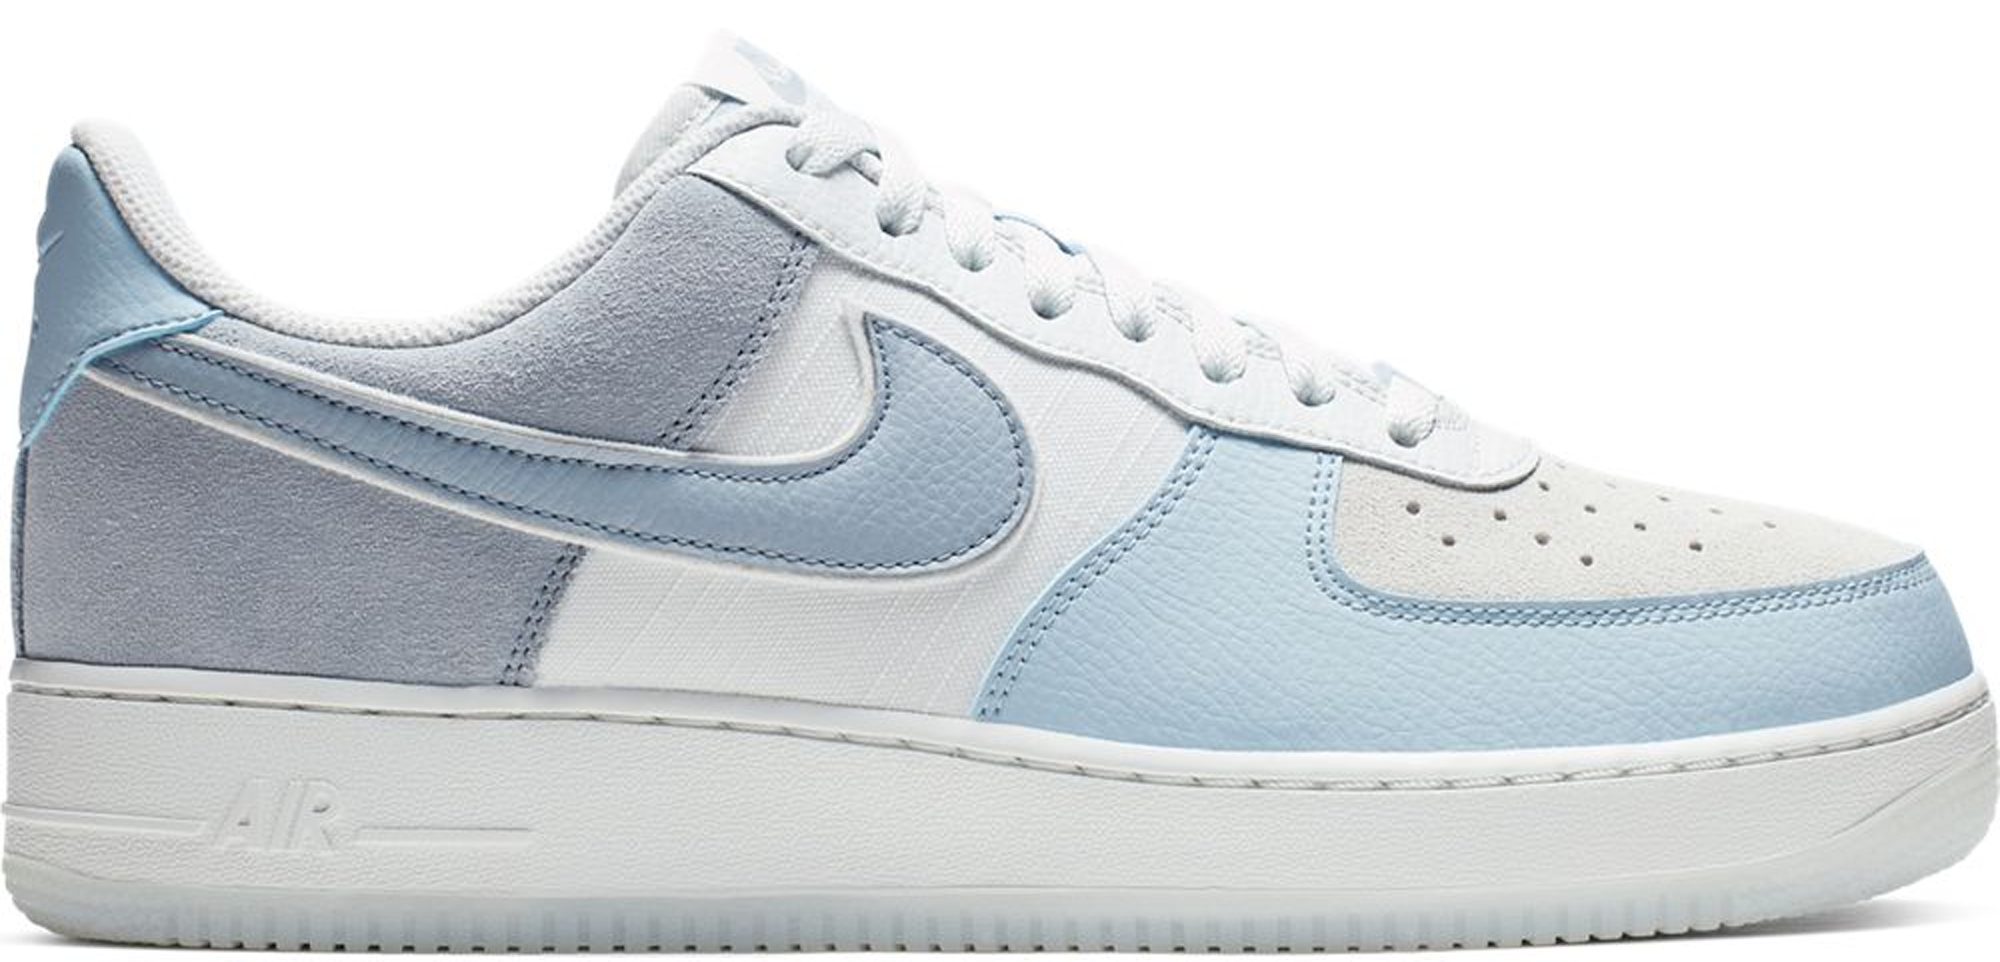 Nike Air Force 1 Low Light Armory Blue Obsidian Mist Nike Shoes Air Force Custom Nike Shoes Nike Air Shoes